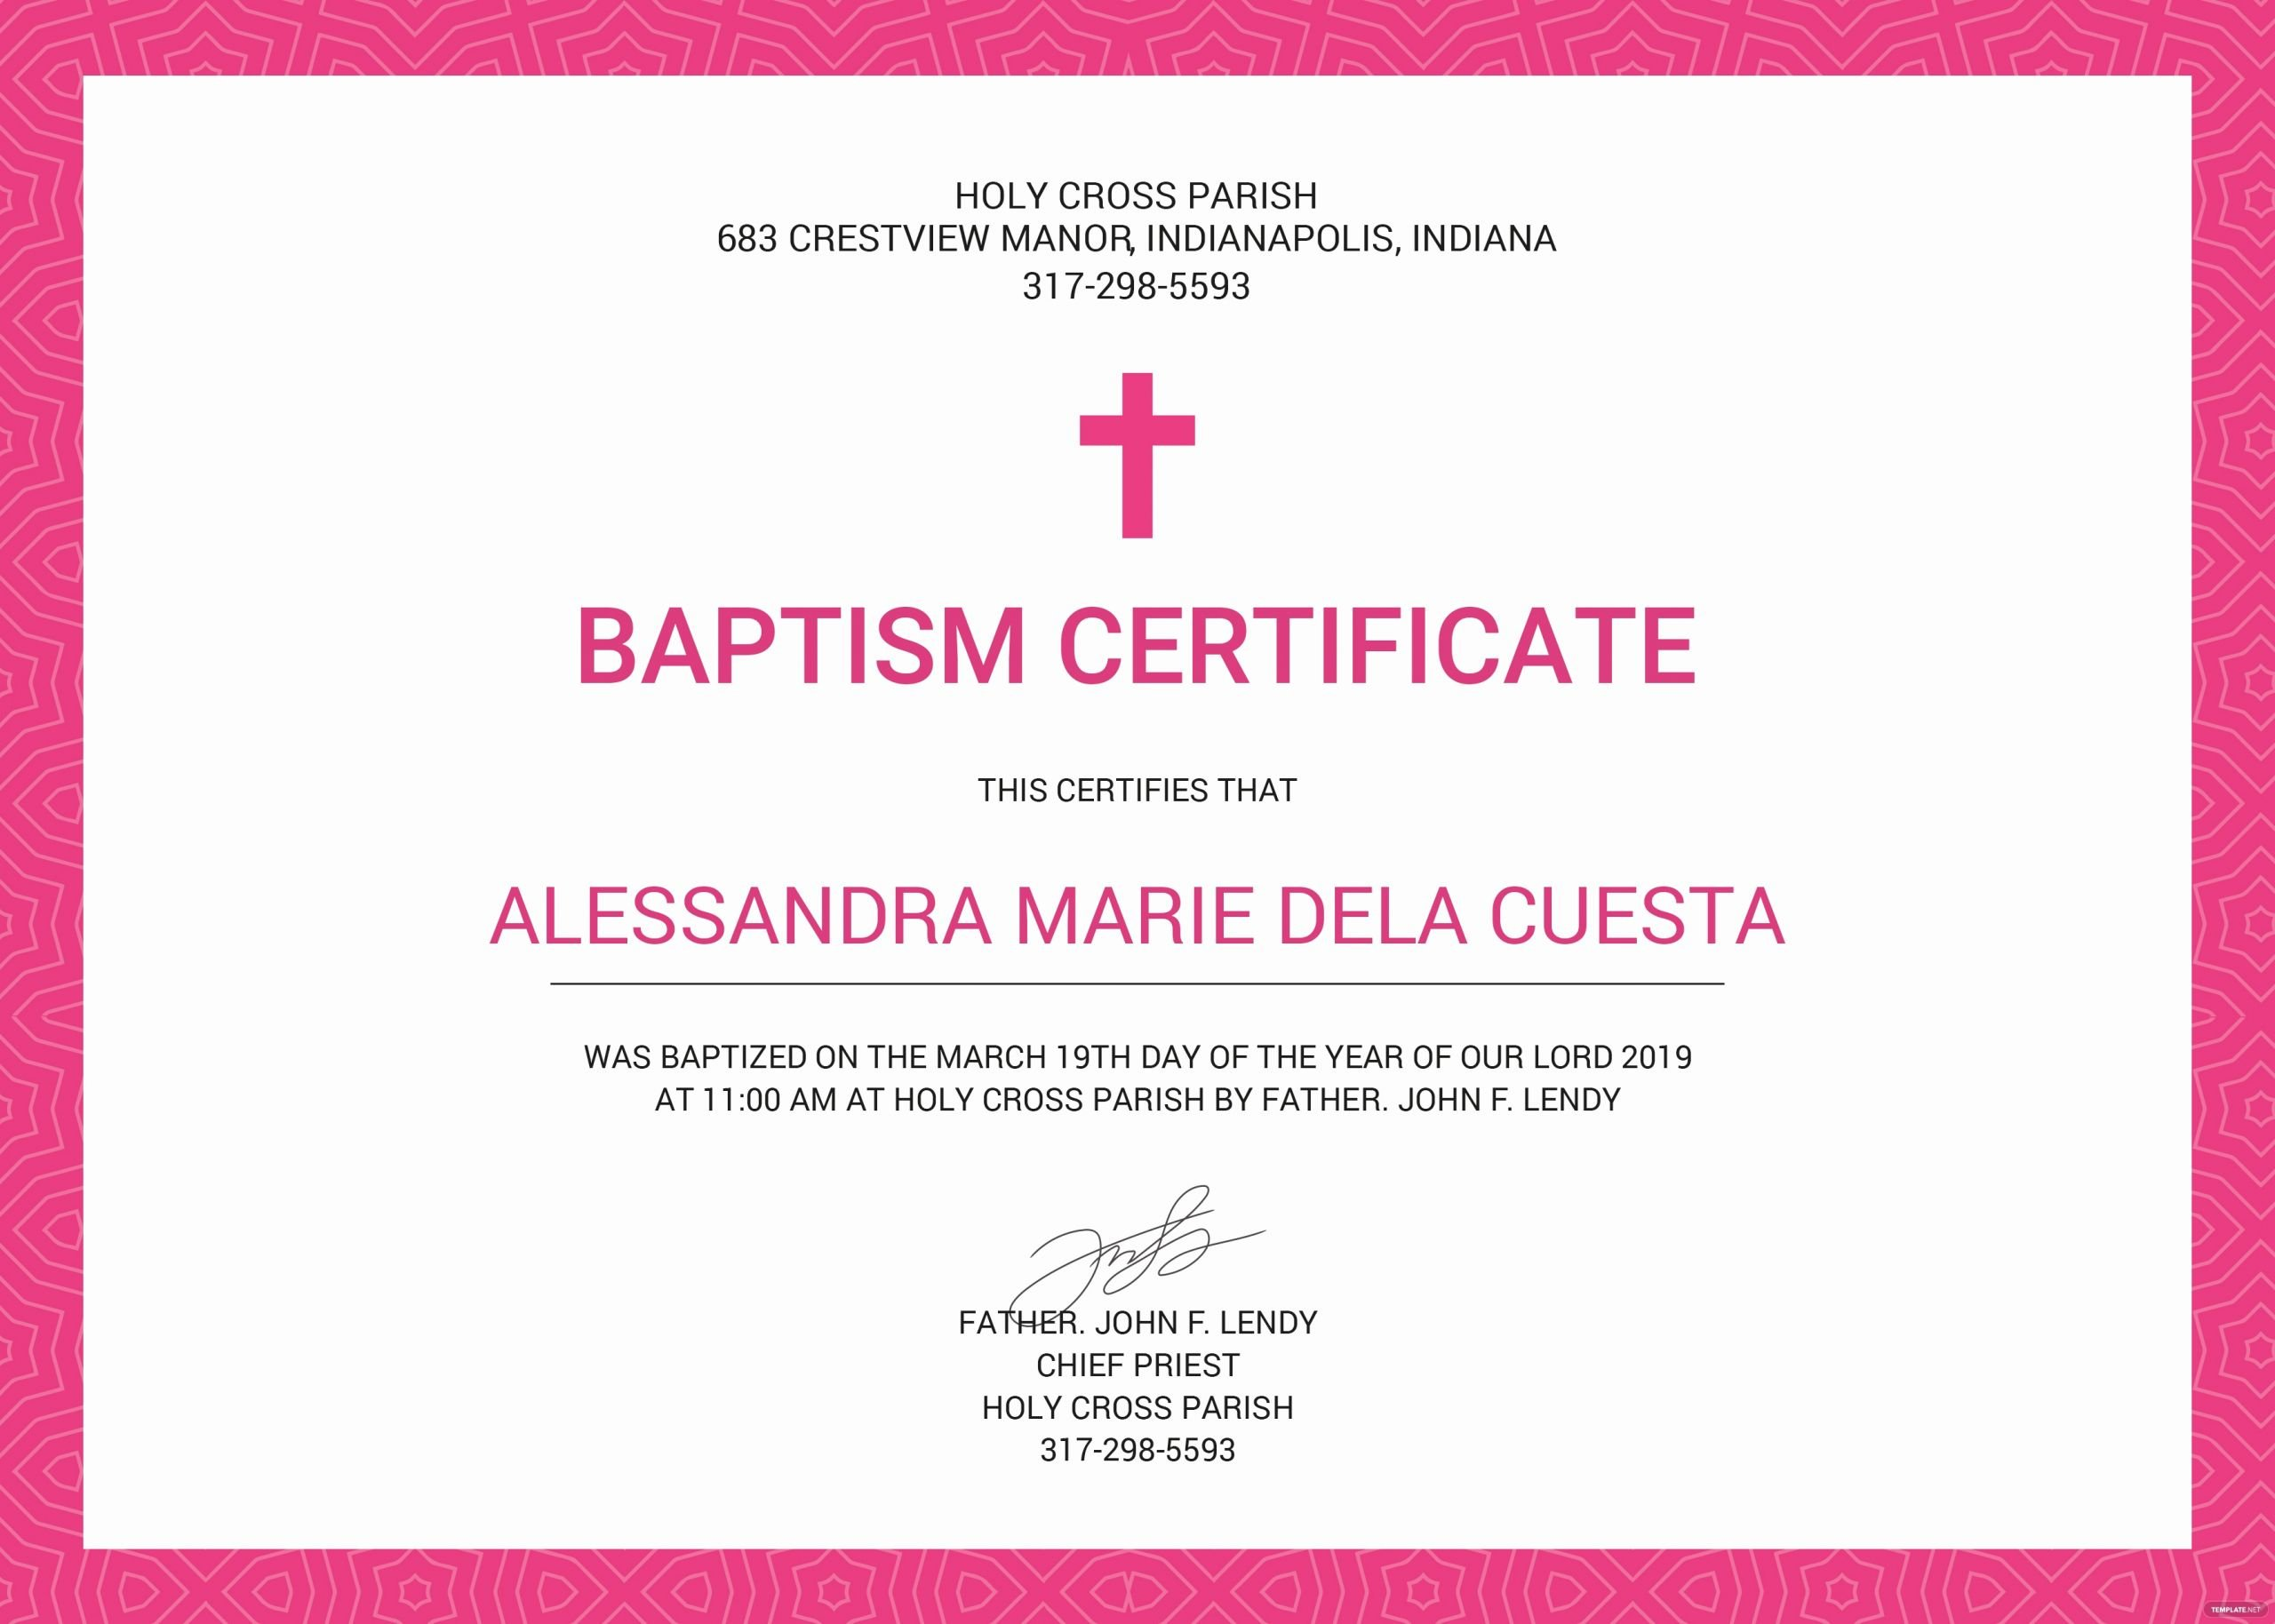 Editable Baptism Certificate In Word Lovely Free Baptism Certificate Template In Psd Ms Word